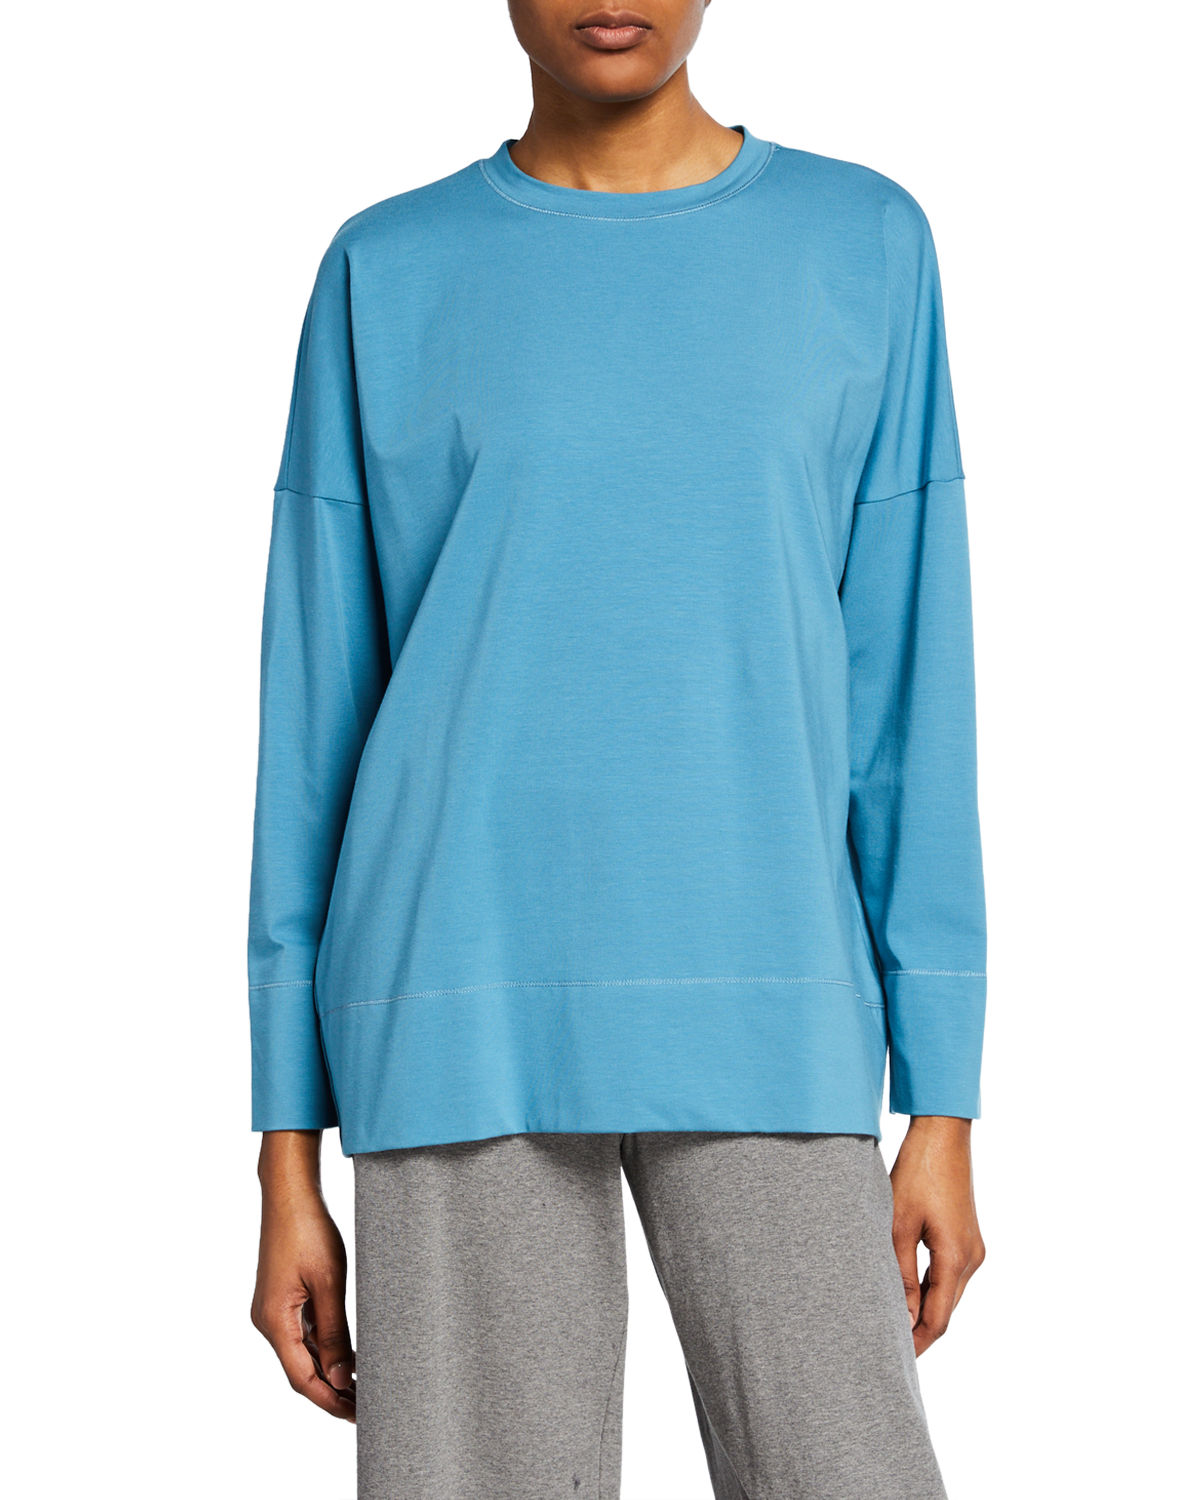 Eileen Fisher Tops PLUS SIZE COTTON JERSEY CREWNECK LONG-SLEEVE TOP